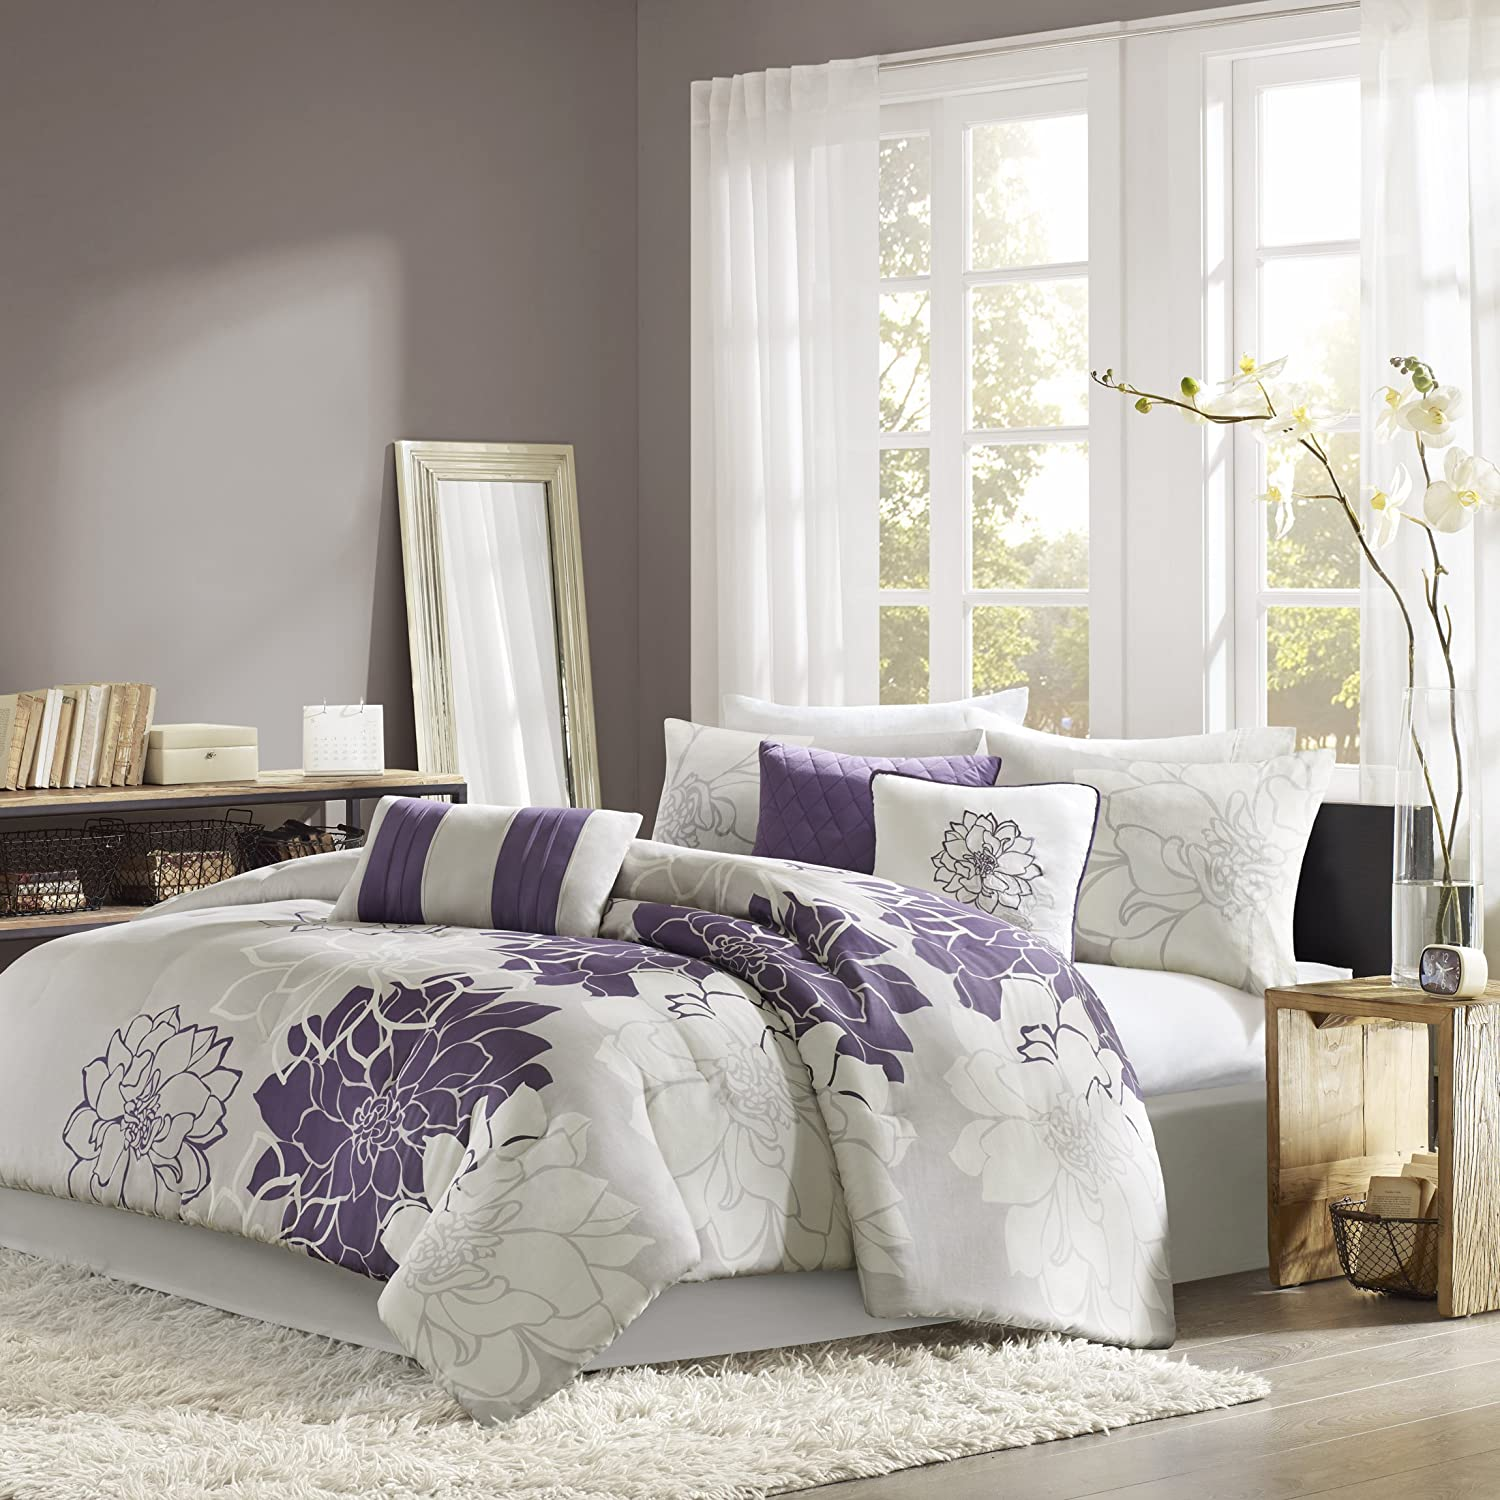 pinch dp ruffled pleat lavender chic embellished piece home set floral kitchen designer halpert com lilac amazon queen an comforter